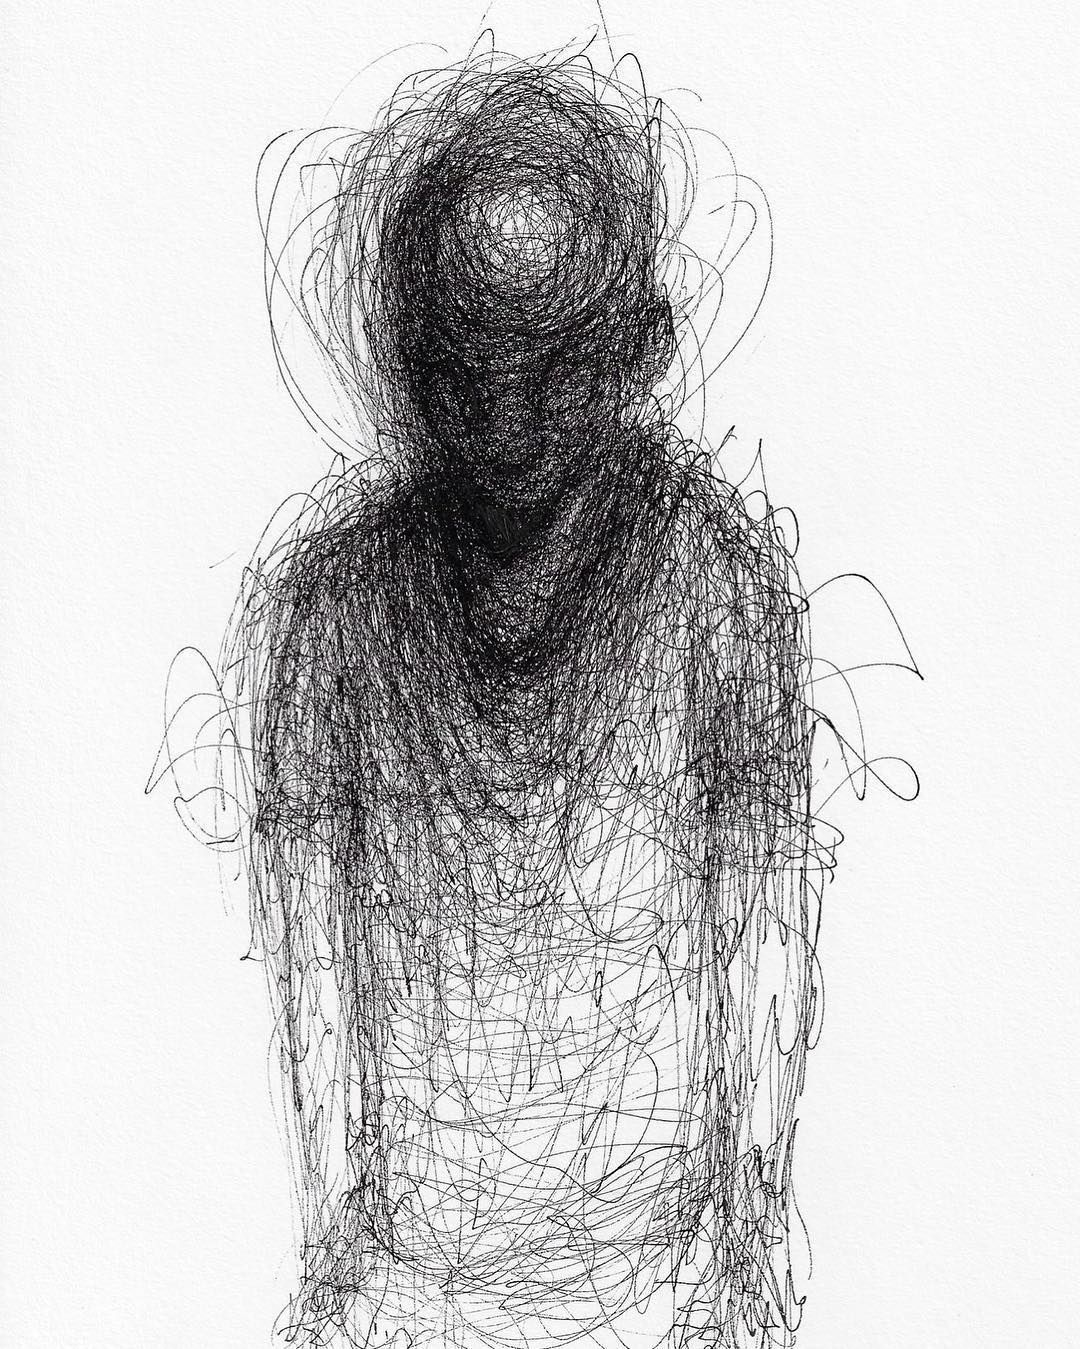 Scribbled Portraits of Brooding Figures by Adam Riches | Colossal